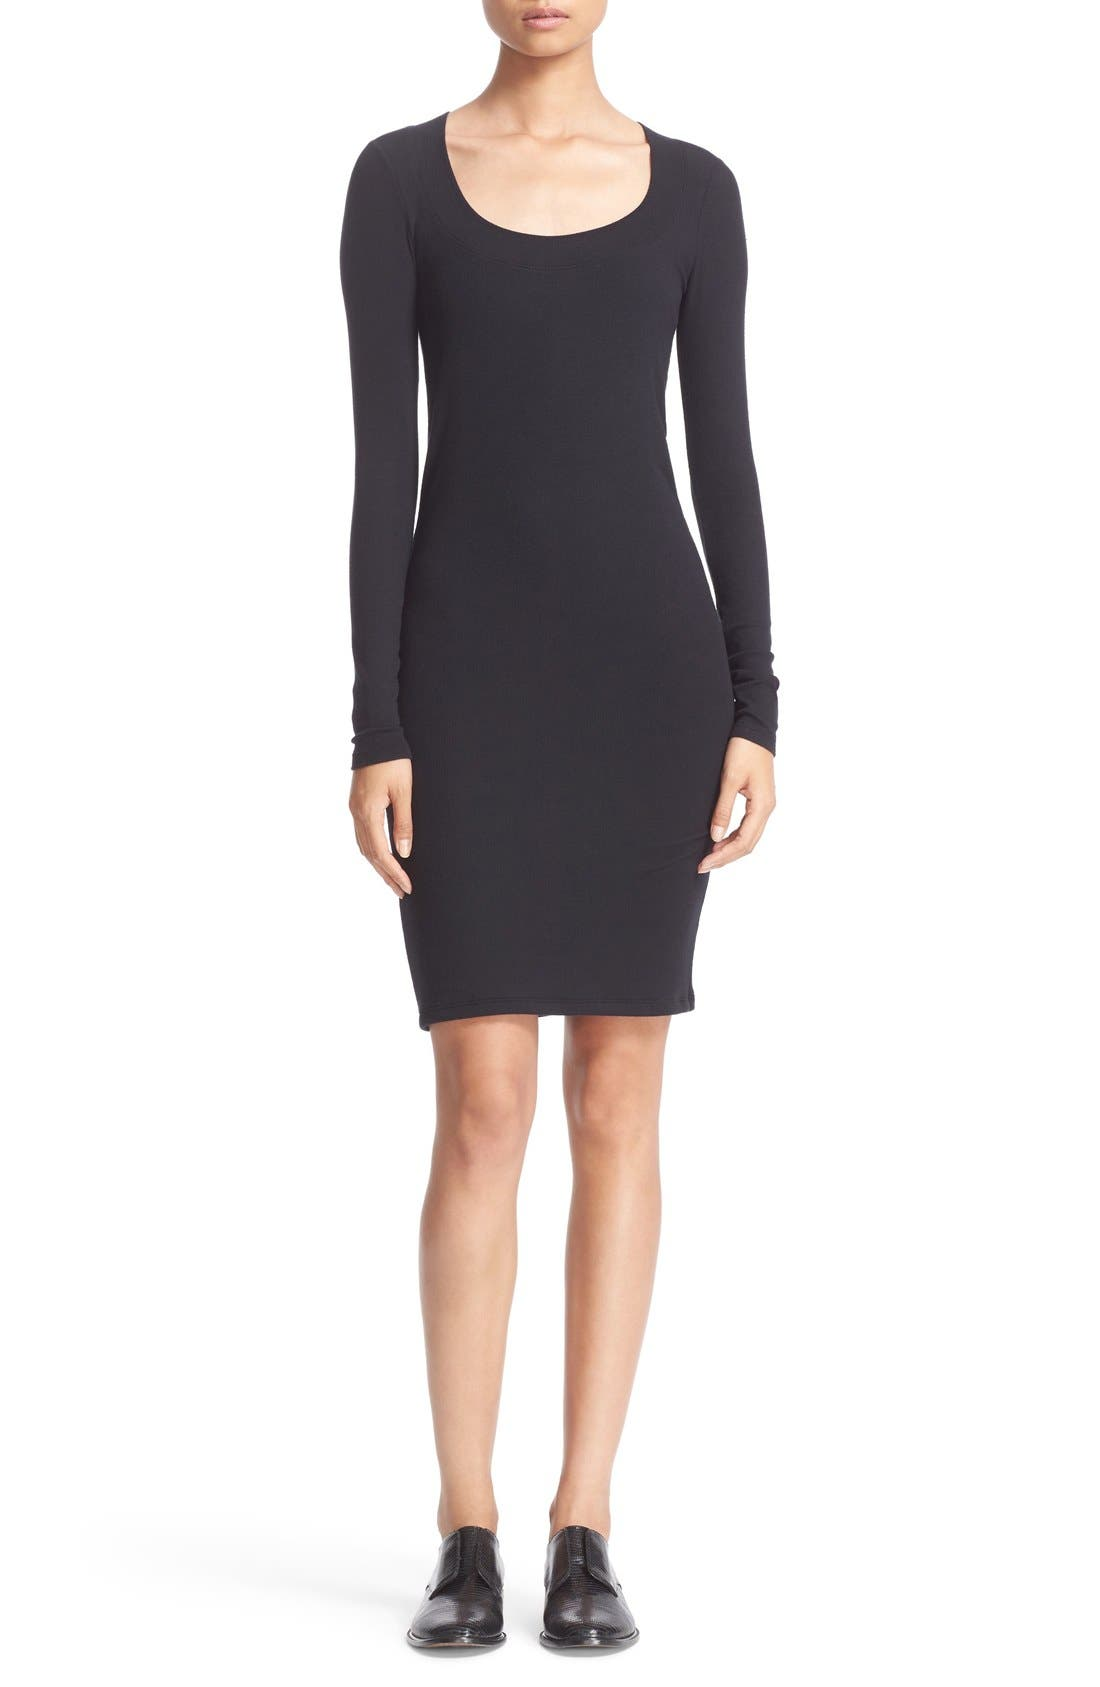 Alternate Image 1 Selected - ATM Anthony Thomas Melillo Scoop Neck Rib Jersey Dress